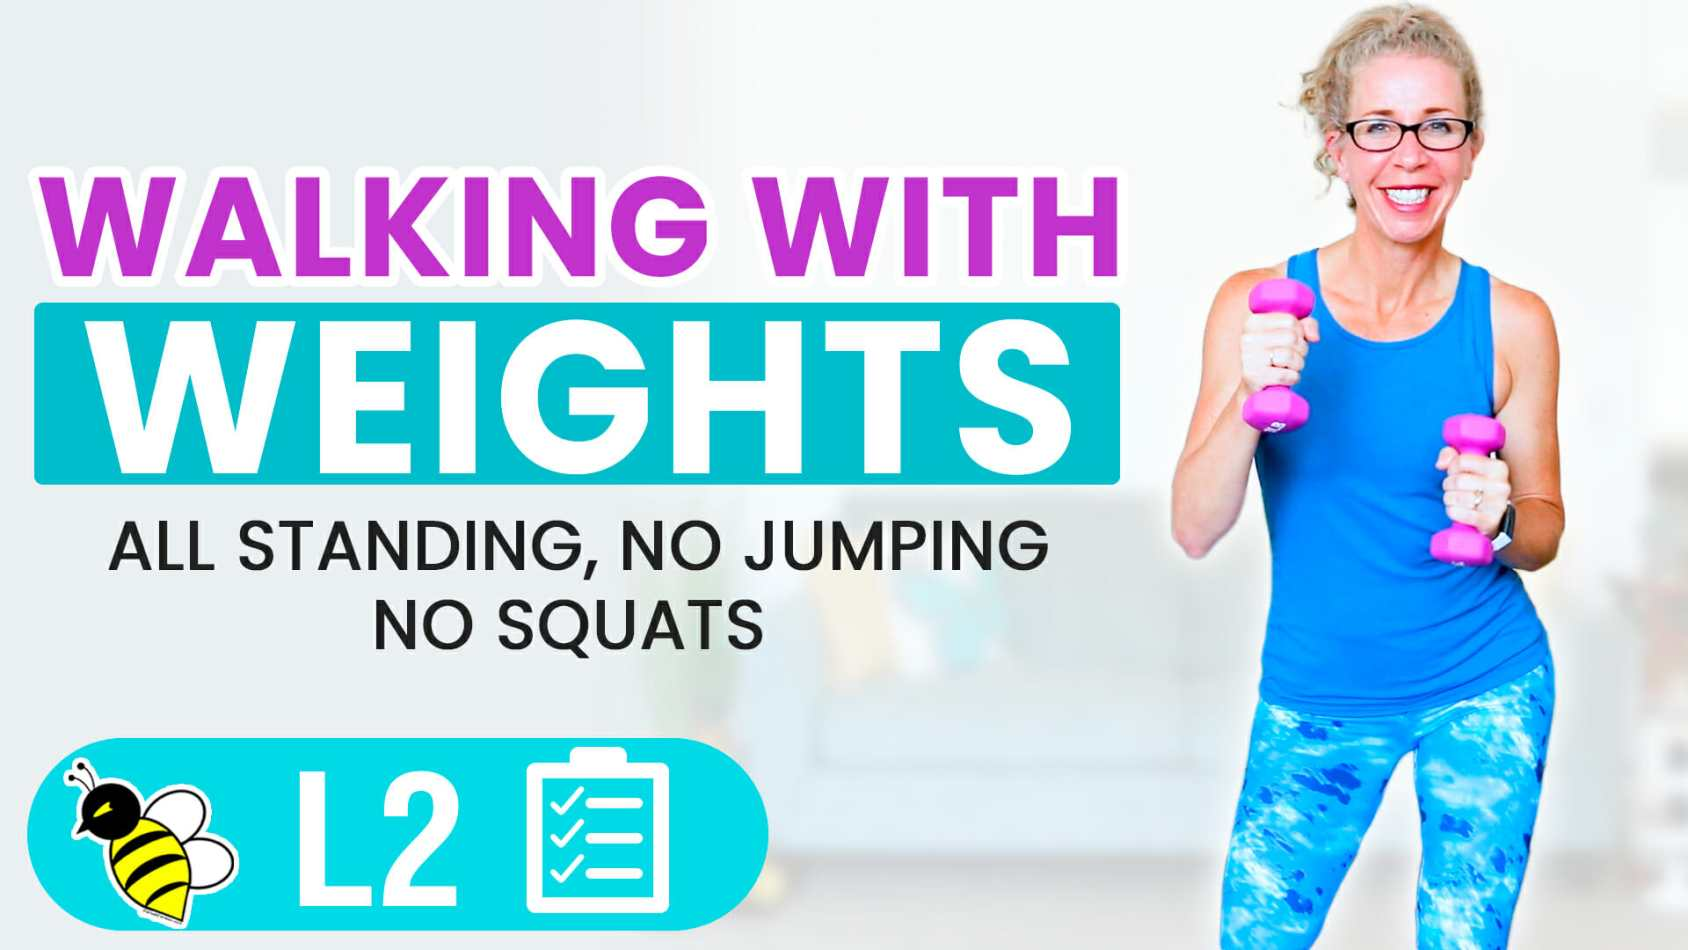 25 Minute WALKING with WEIGHTS, Knee-Friendly Cardio Toning with Light Dumbbells Workout